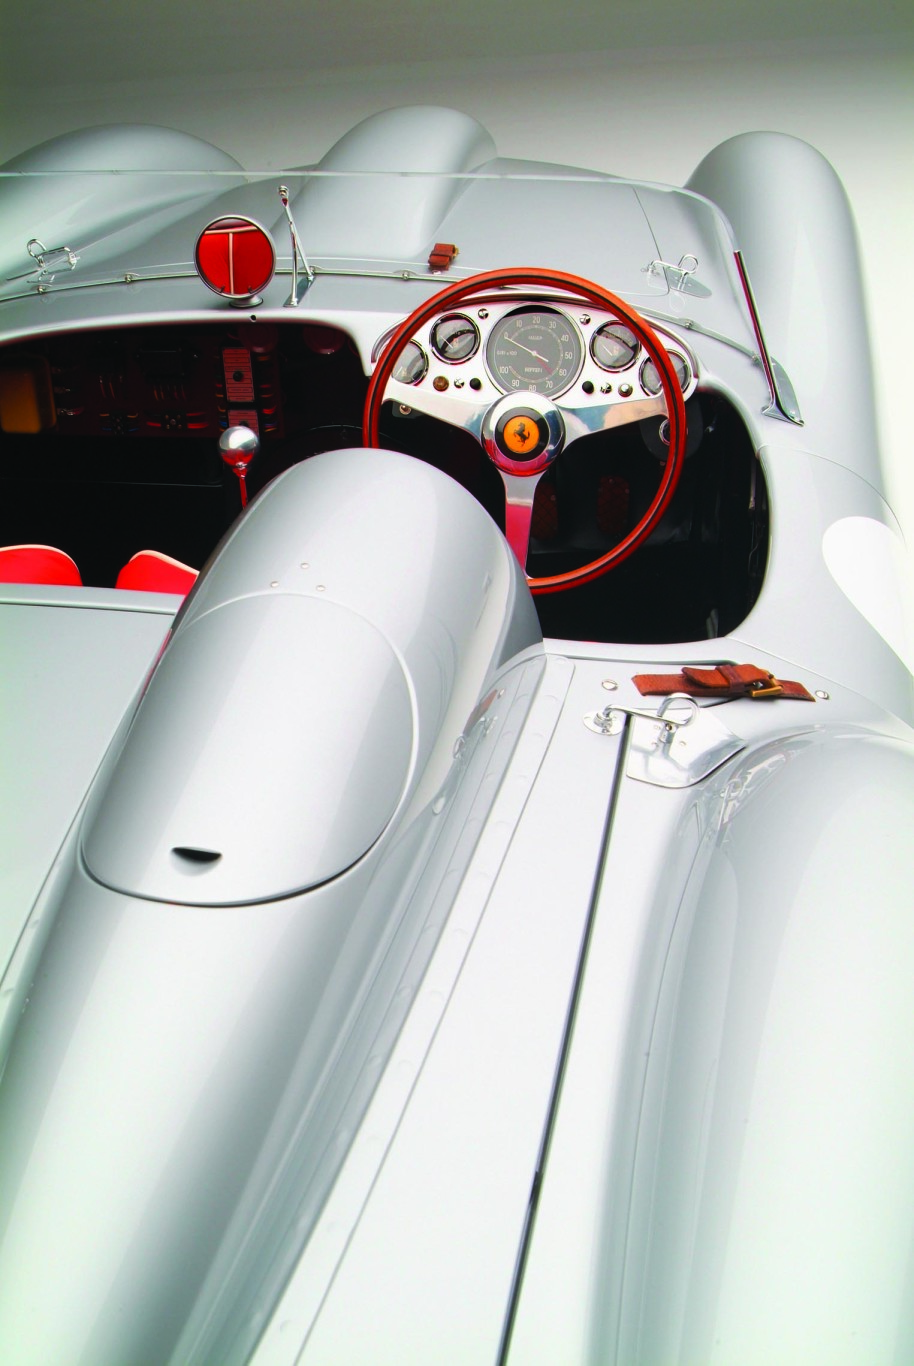 1957 Ferrari Testa Rossa Interior and Dashboard